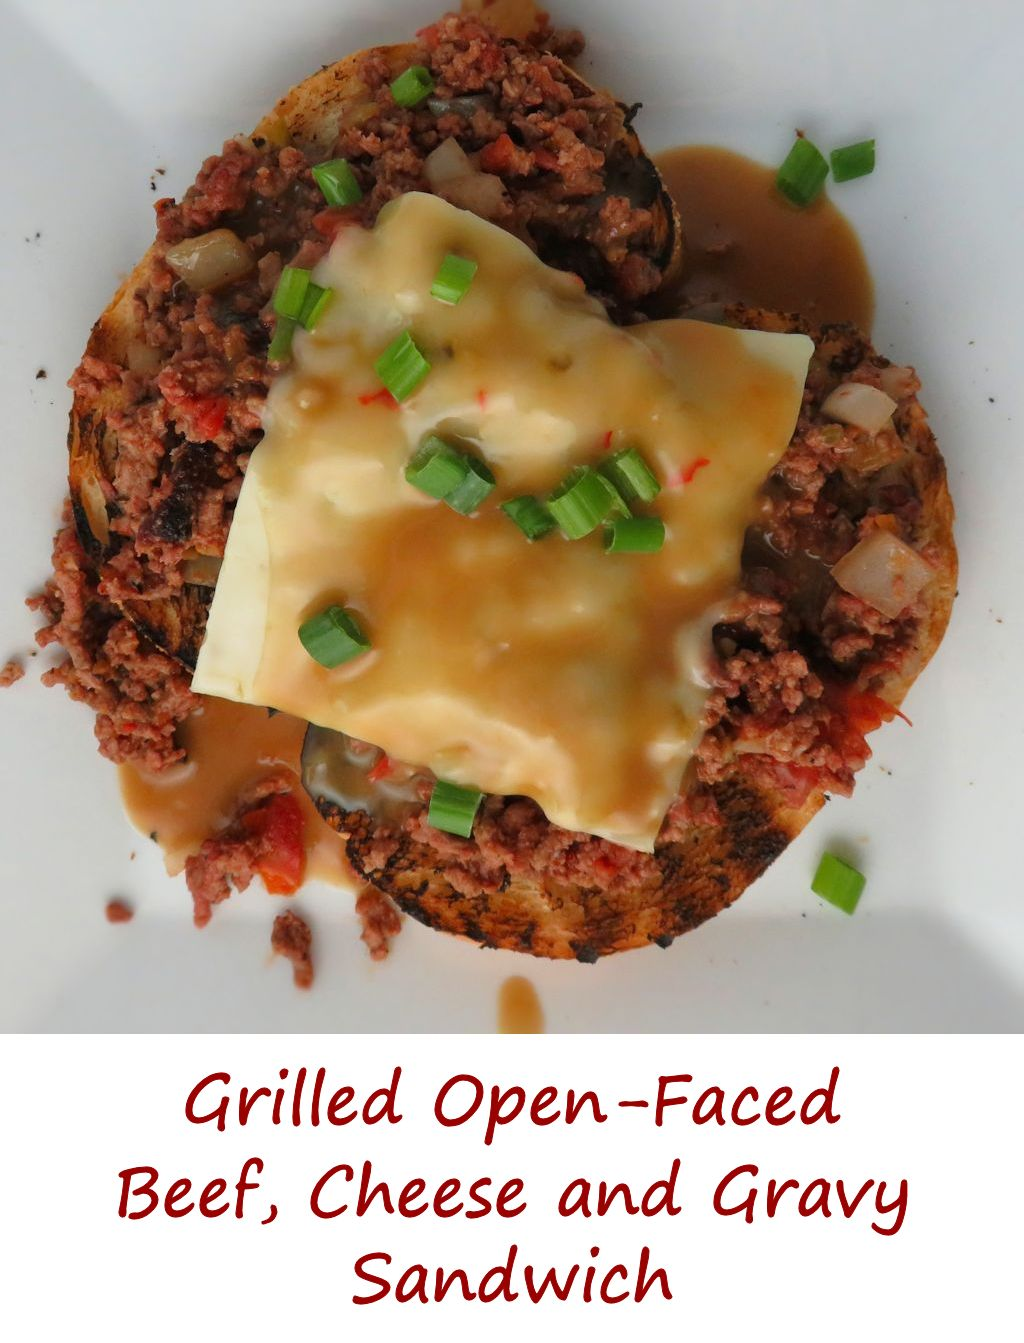 Grilled Open-Faced Beef, Cheese and Gravy Sandwiches